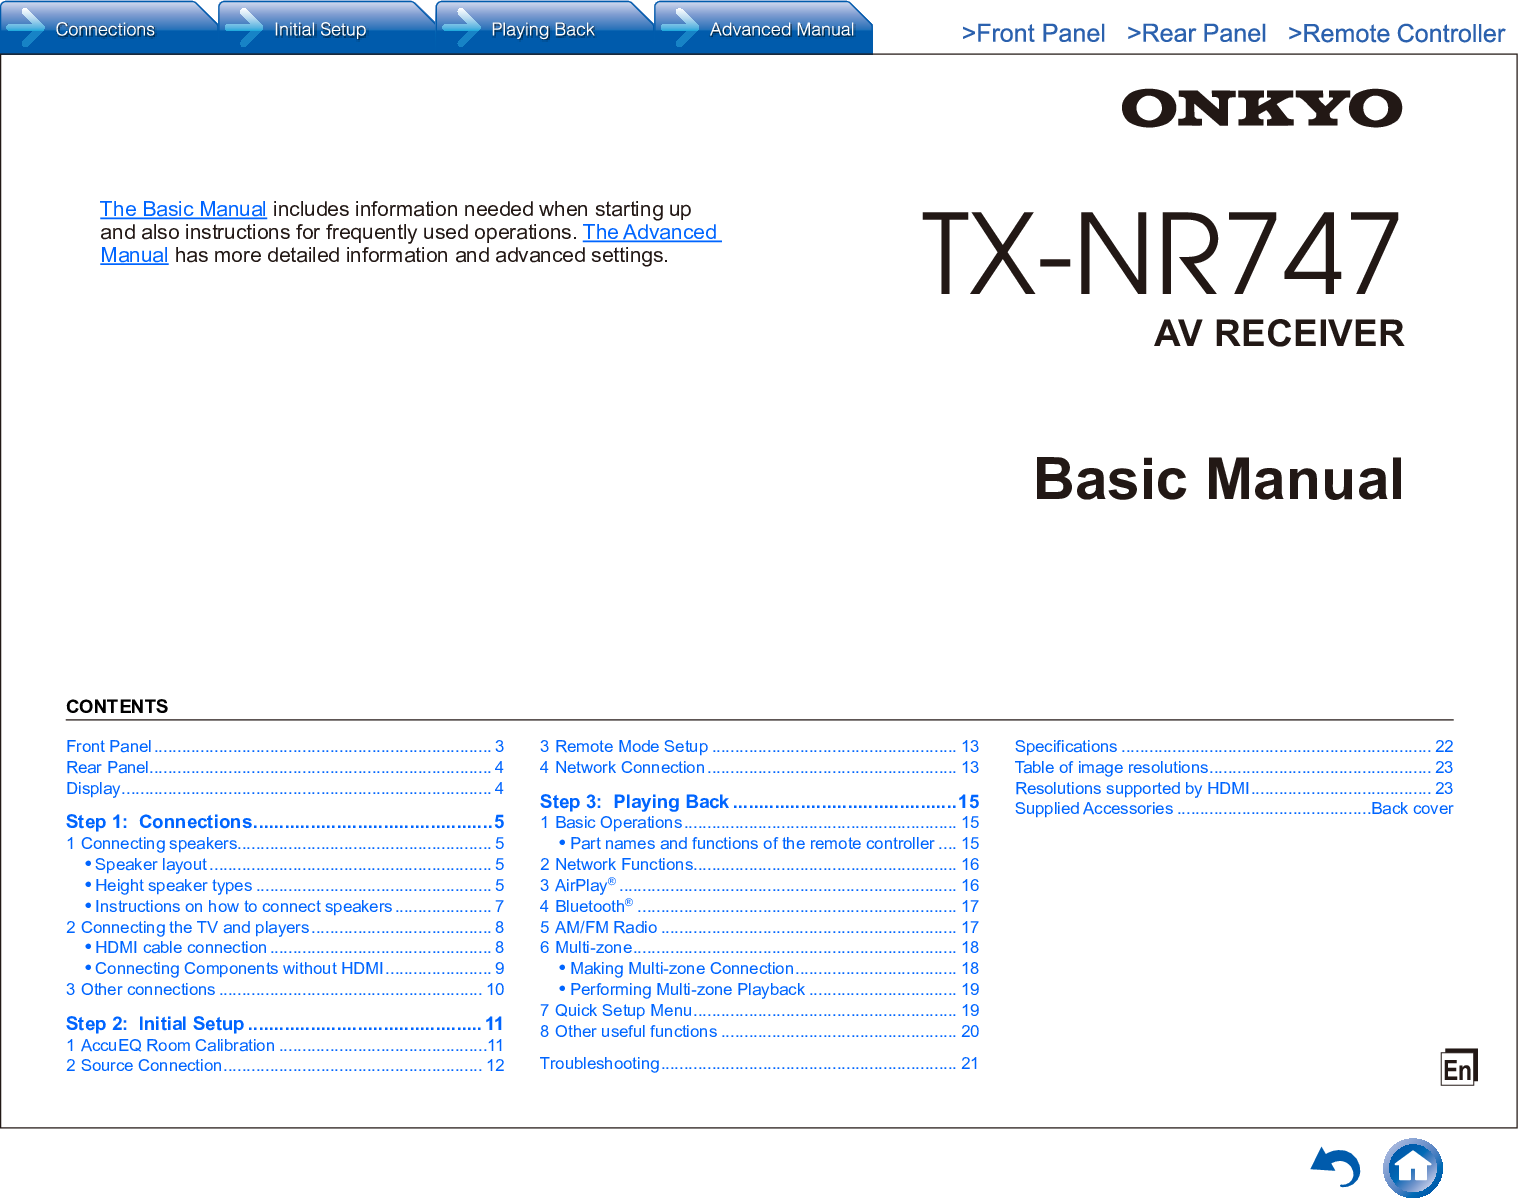 Onkyo TX NR747 User Manual To The E1e3fc02 f052 4841 a7cd 7b99c9c90ad2